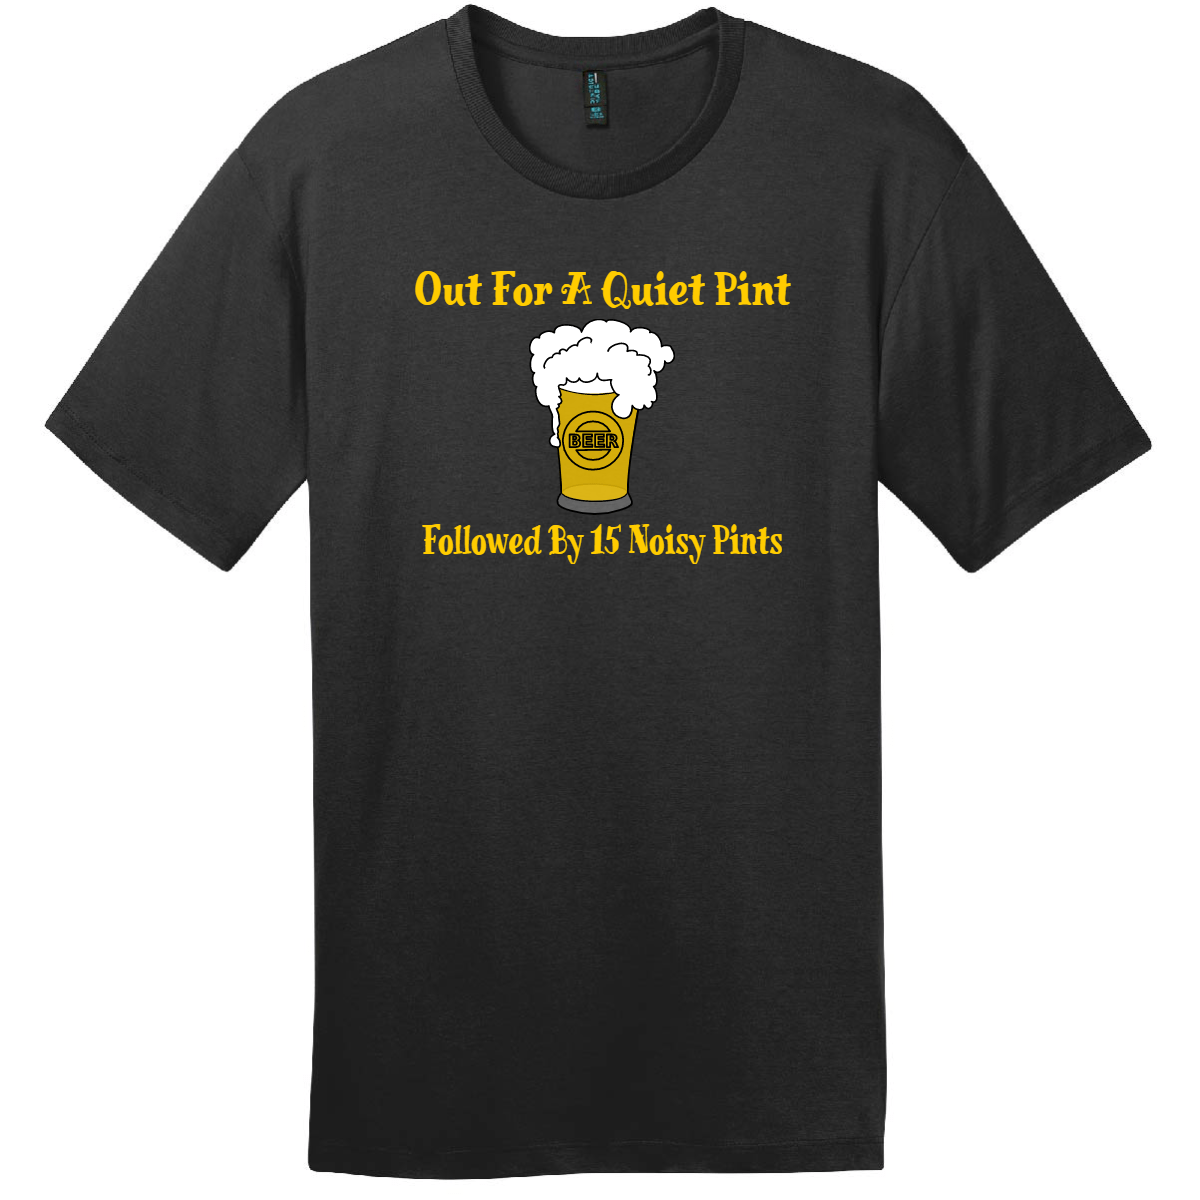 Out For A Quiet Pint T-Shirt